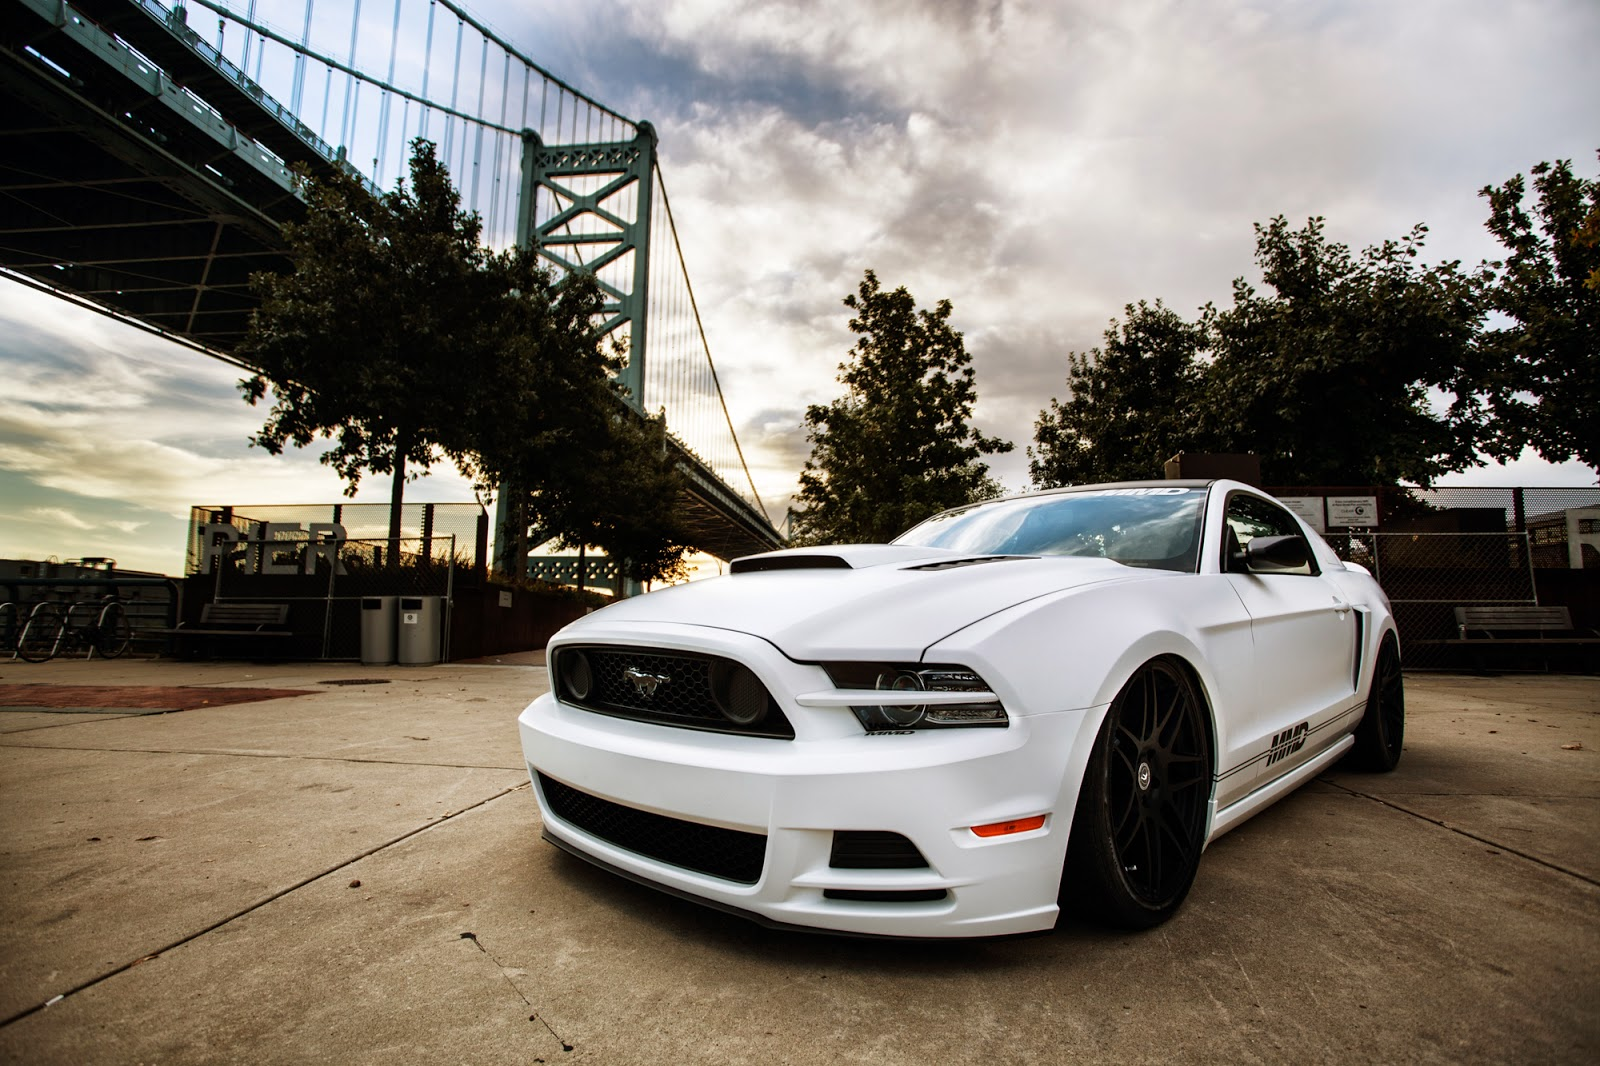 Enter To Win The MMD SEMA Mustang - American muscle car tv show